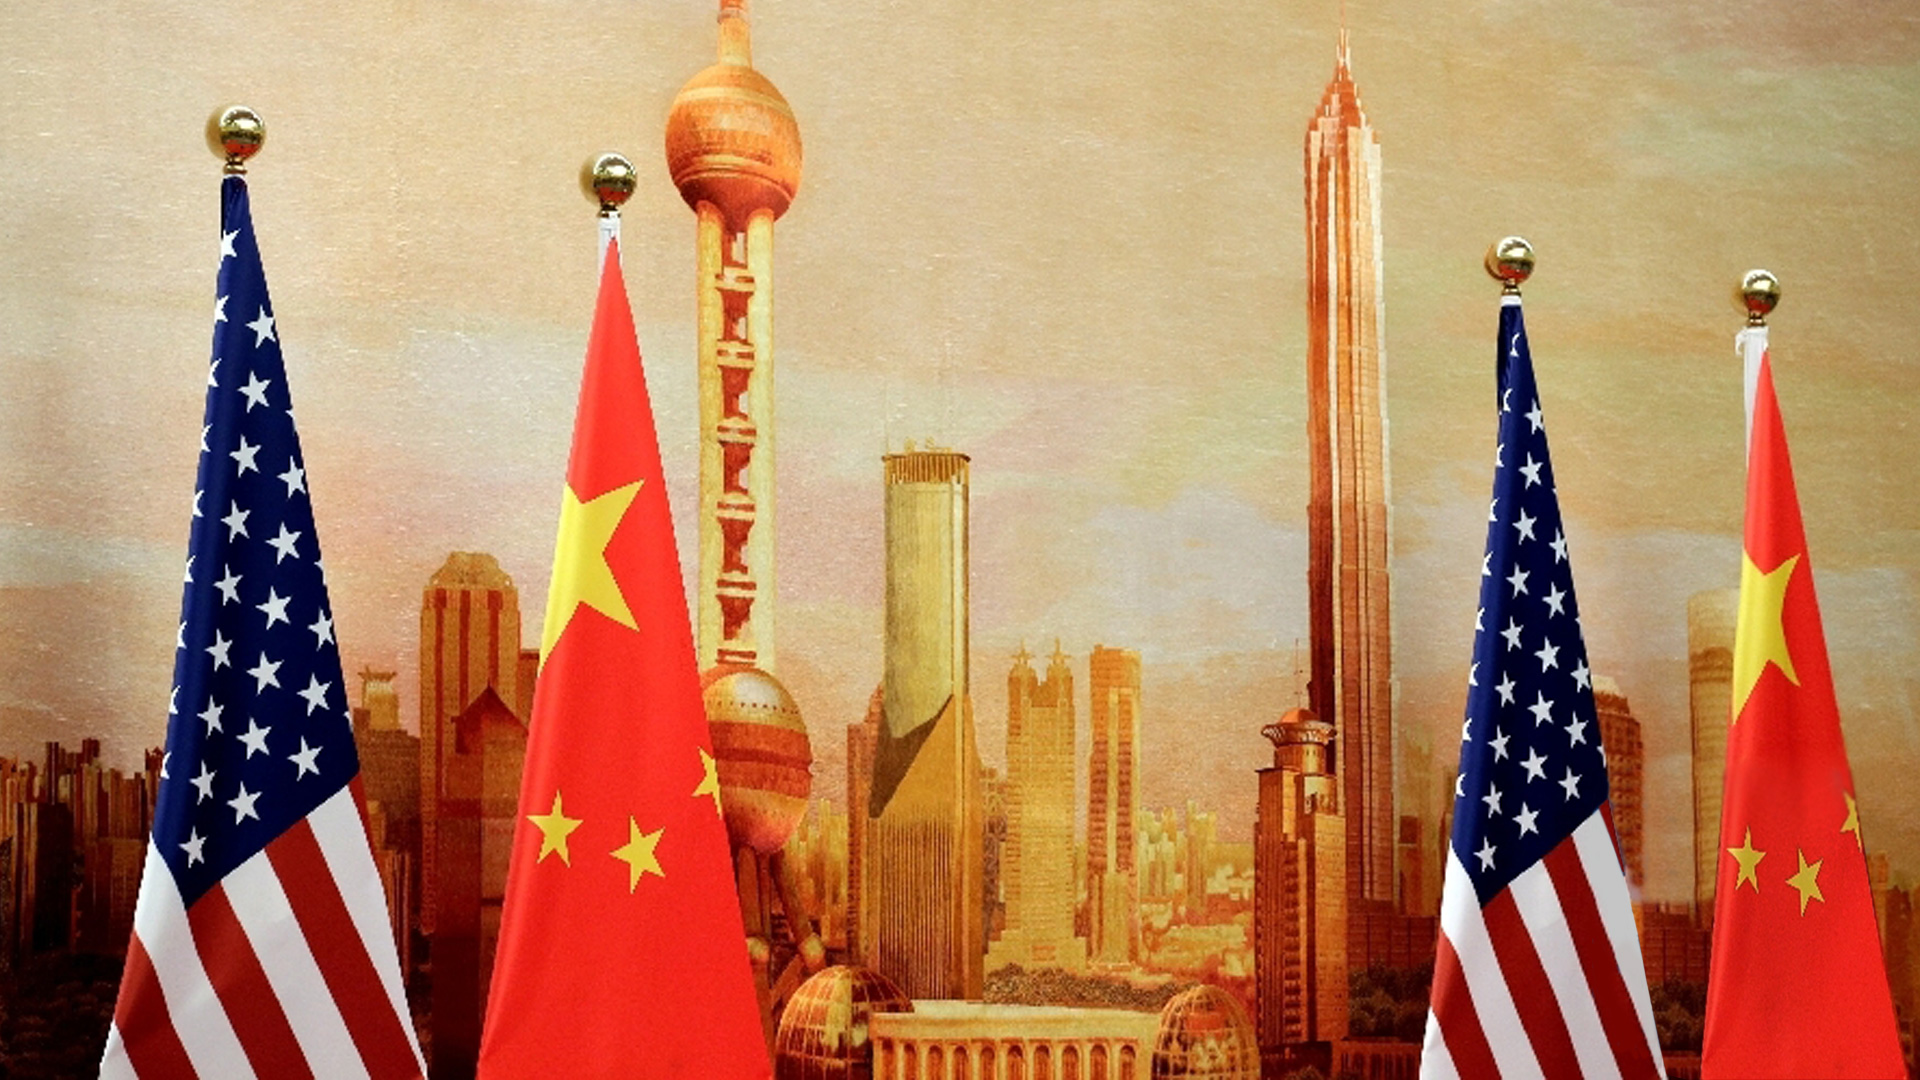 U.S. groups to Biden: Stop confrontation with China, prioritize cooperation